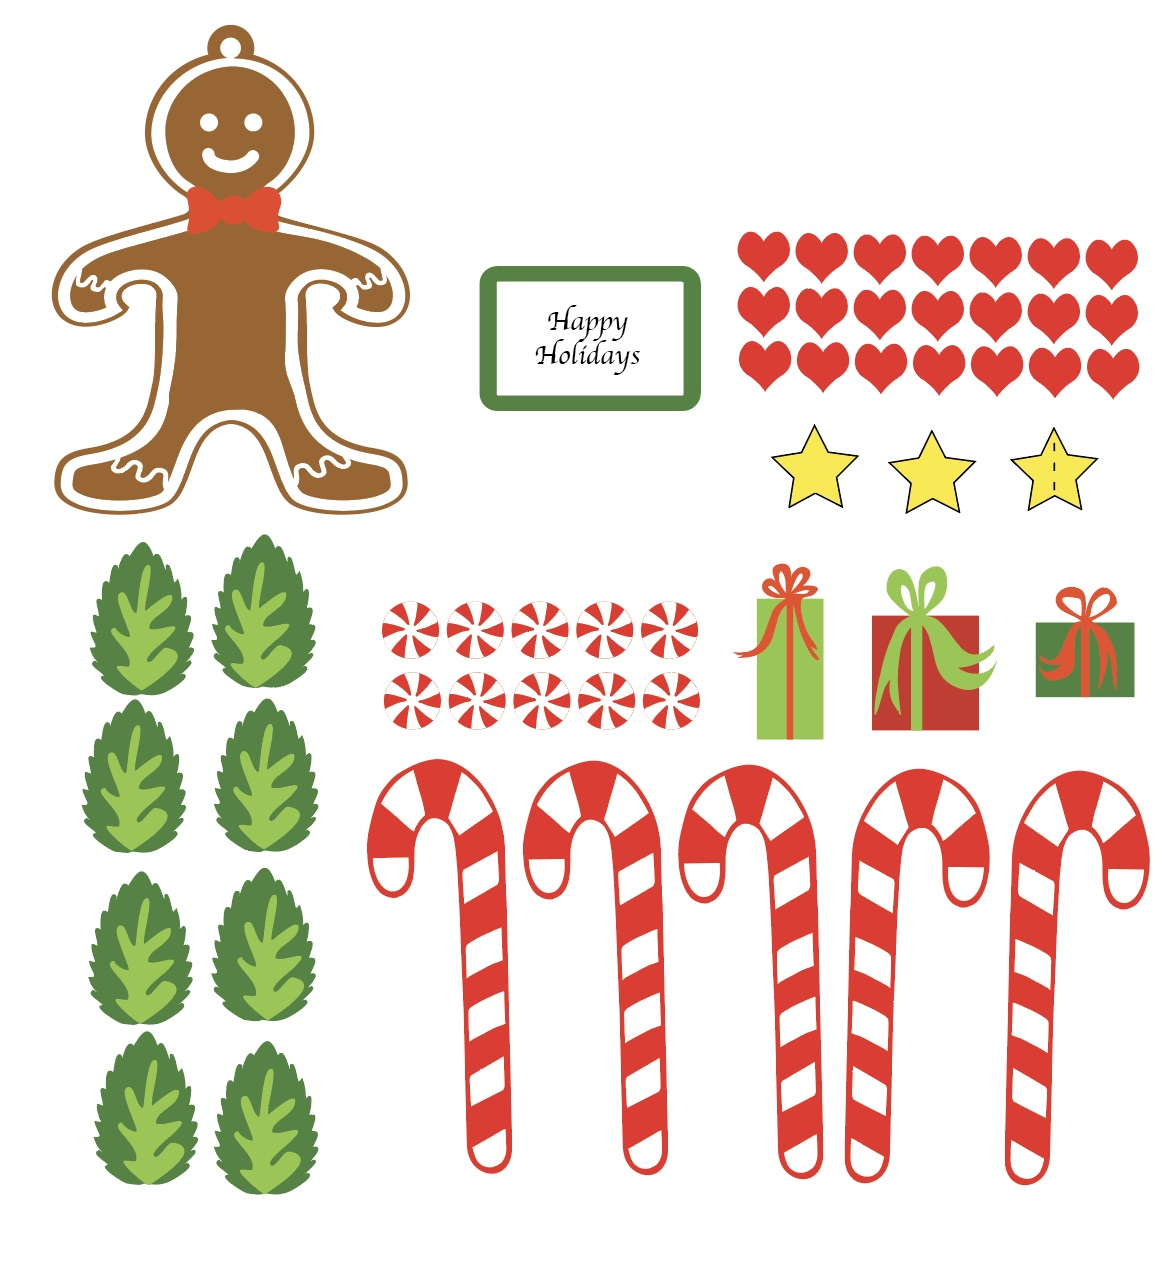 This image is the Print and cut file for the candy and gingerbread man. You can choose to use print and cut features to save time. Be sure to select cut outline options before cutting.